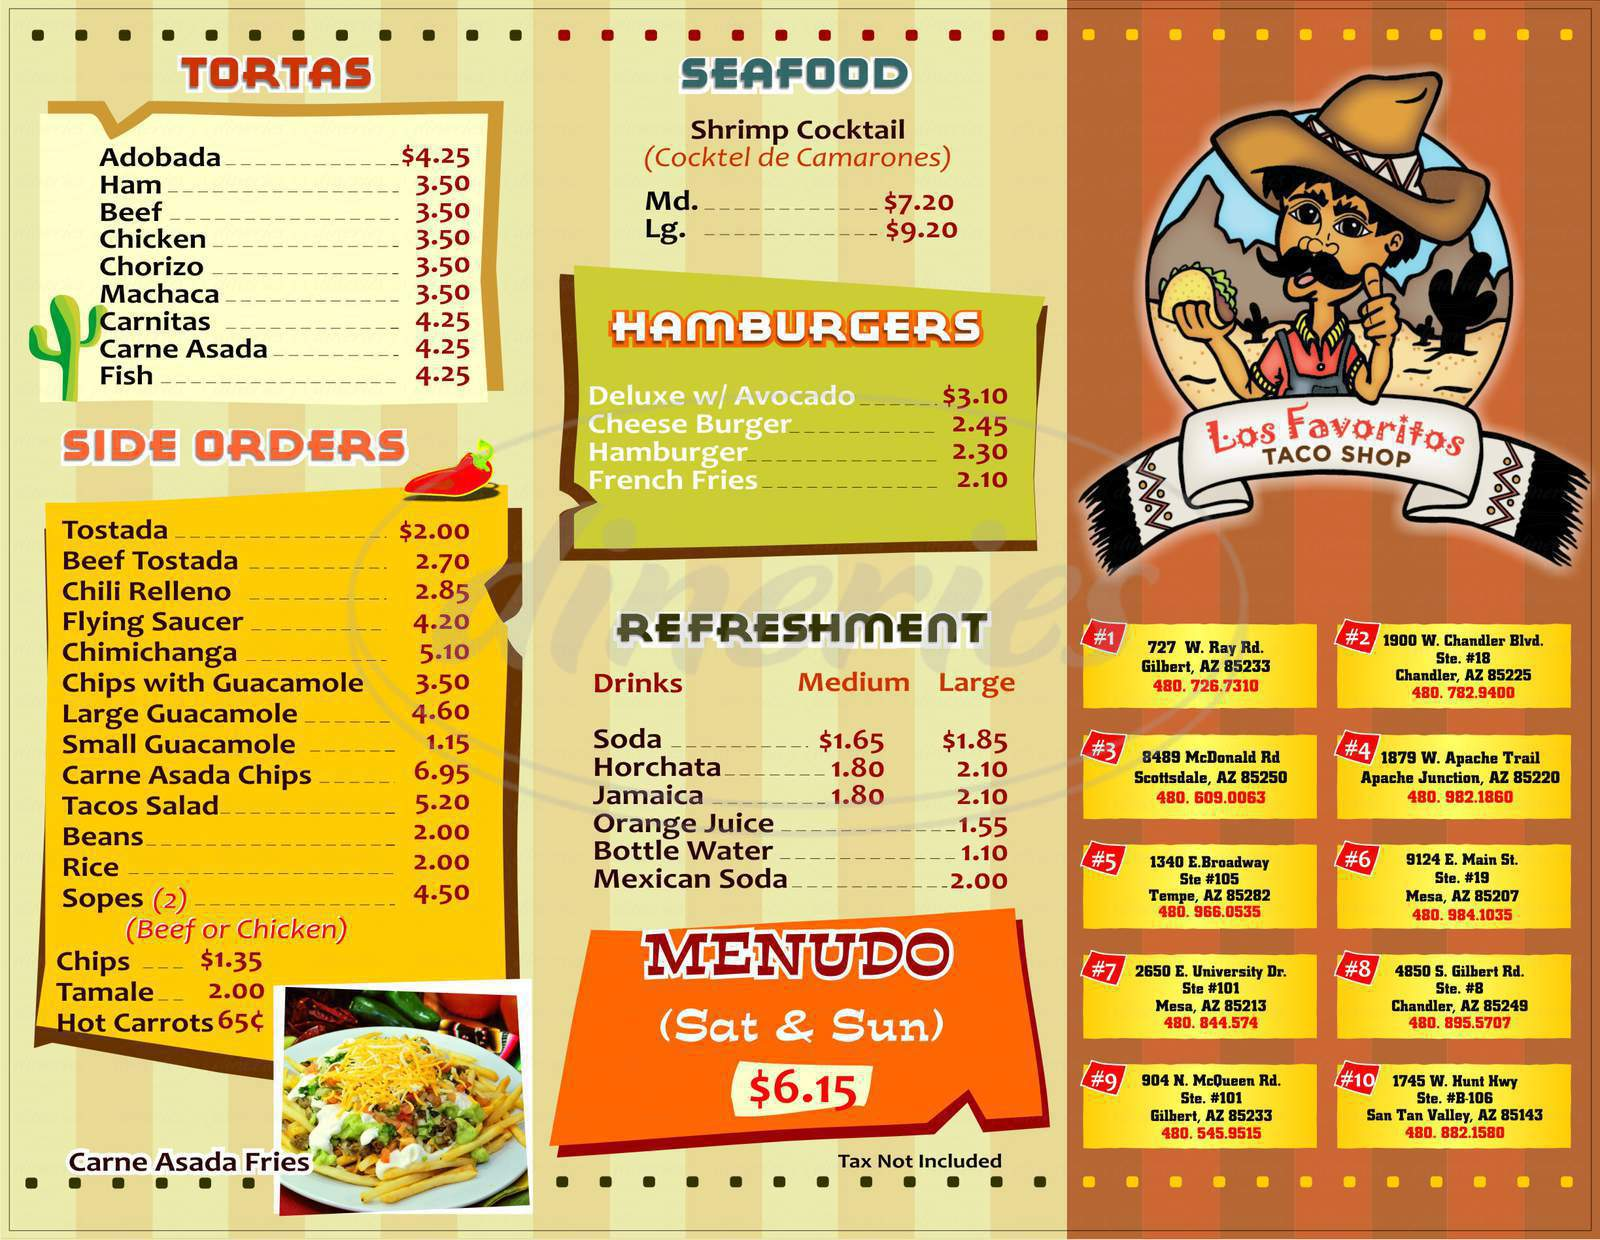 menu for Los Favoritos Taco Shop